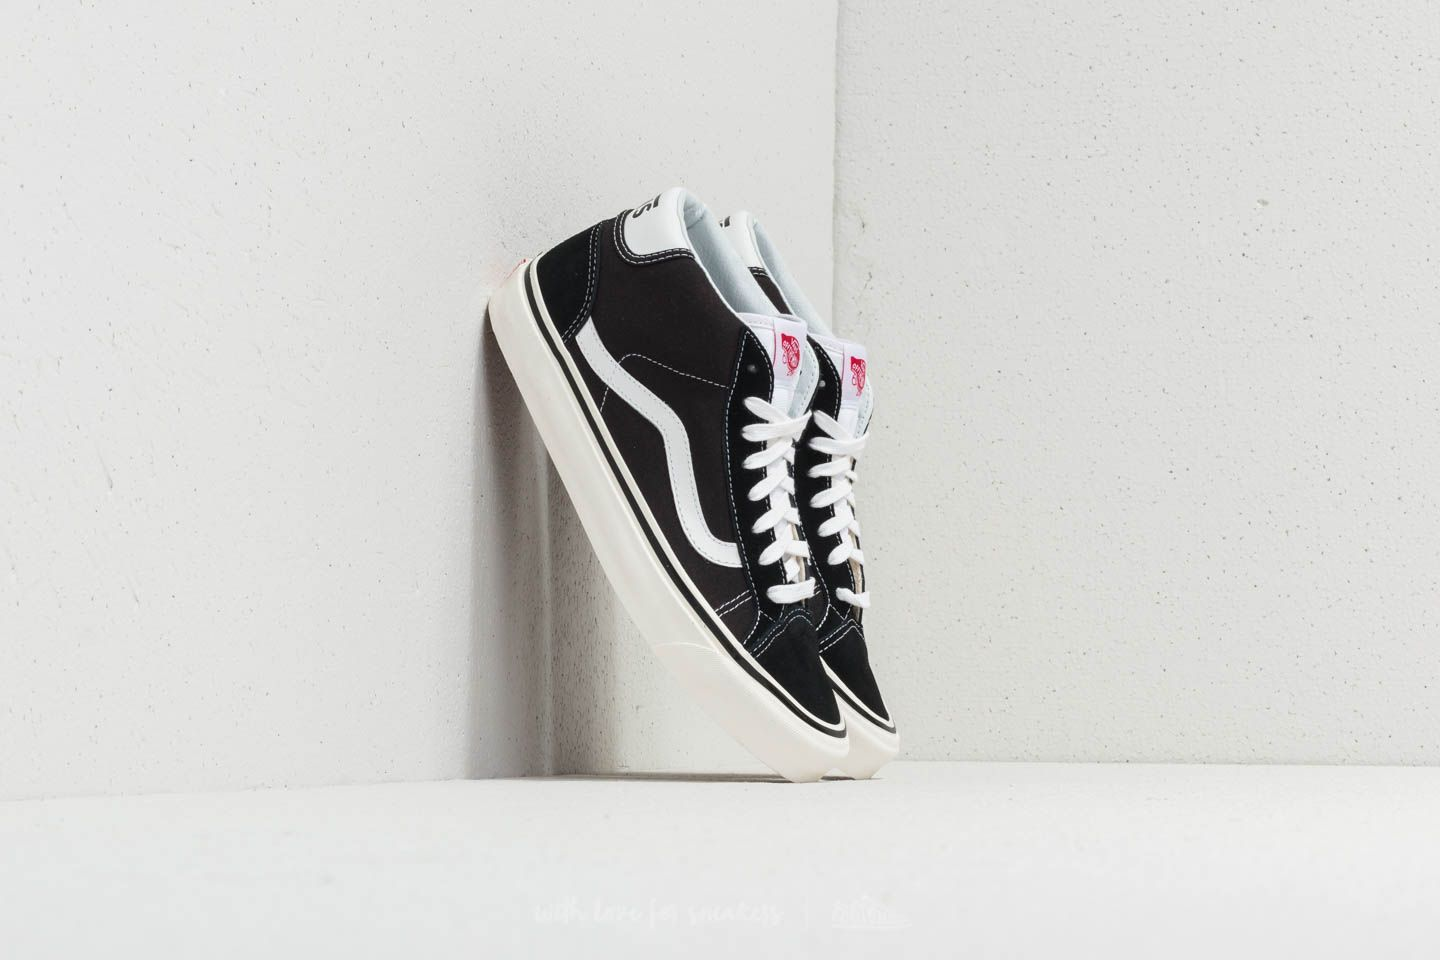 bd7fa29b124eb0 Vans Mid Skool 37 DX (Anaheim Factory) Black  White